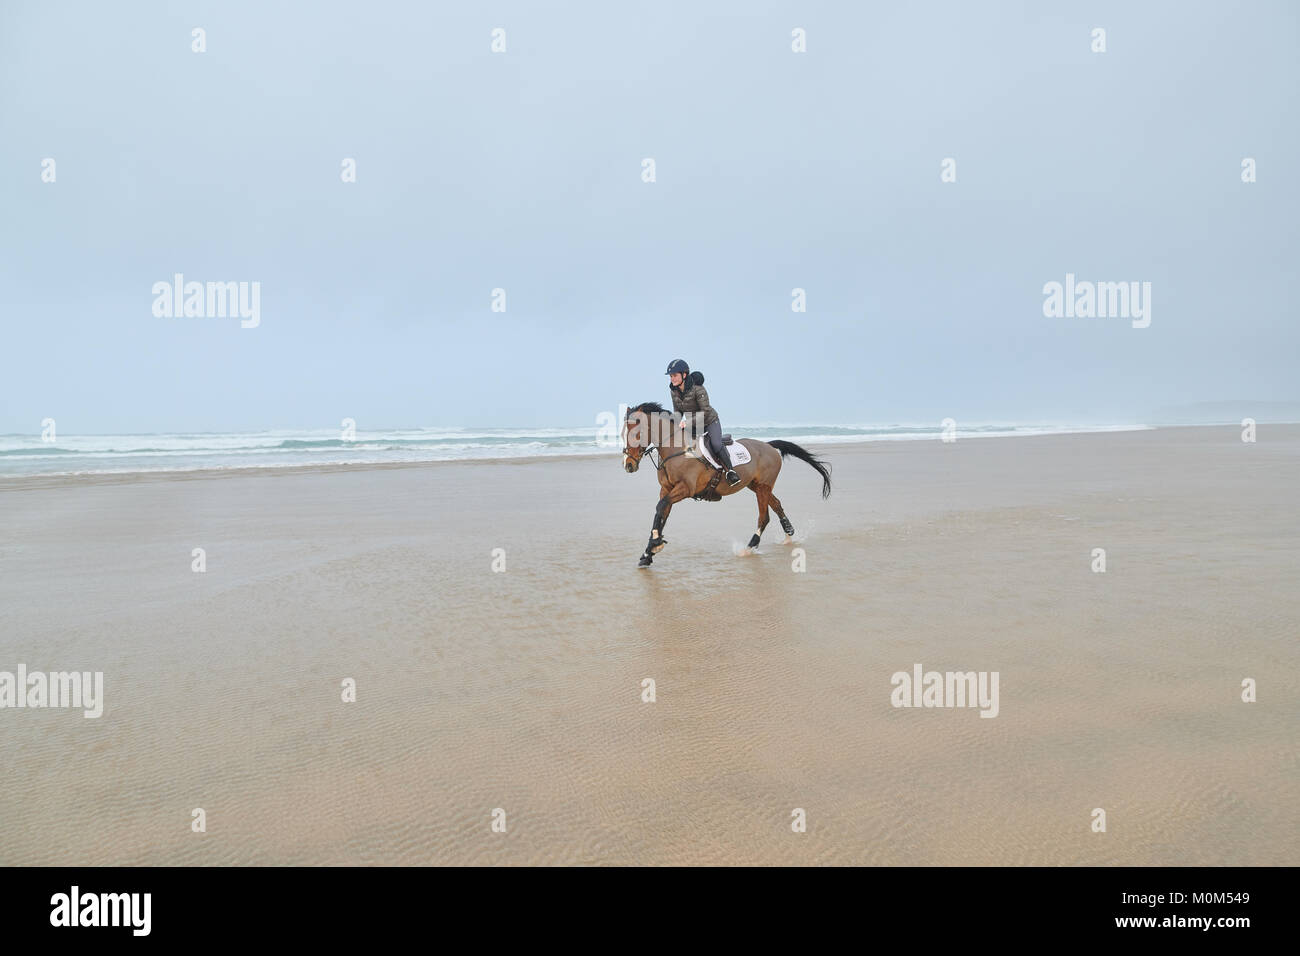 Horse Rider Galloping across the beach at low tide, from right to left. Landscape image with noticeable wind on - Stock Image